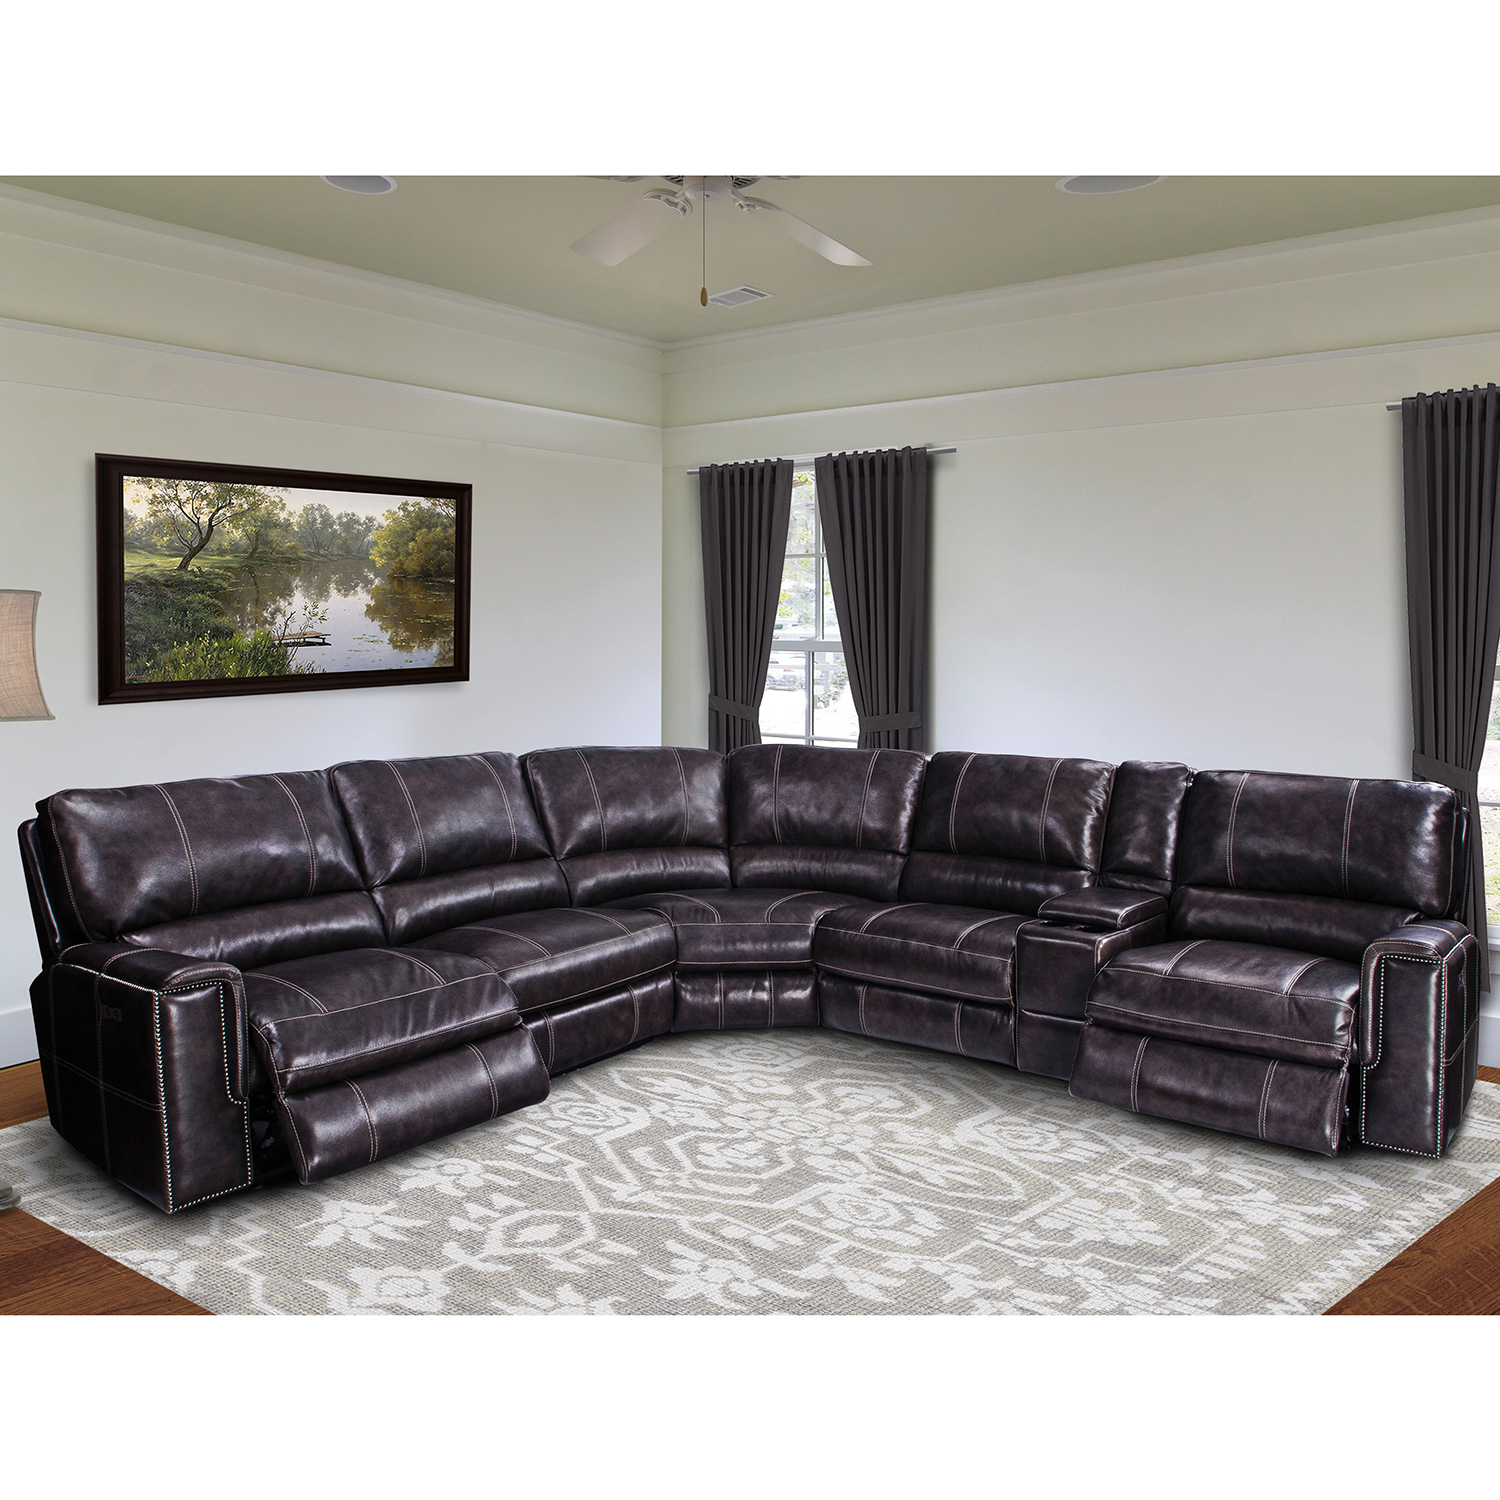 Salinger 6 Piece Sectional Sofa in Twilight Leather by Parker House